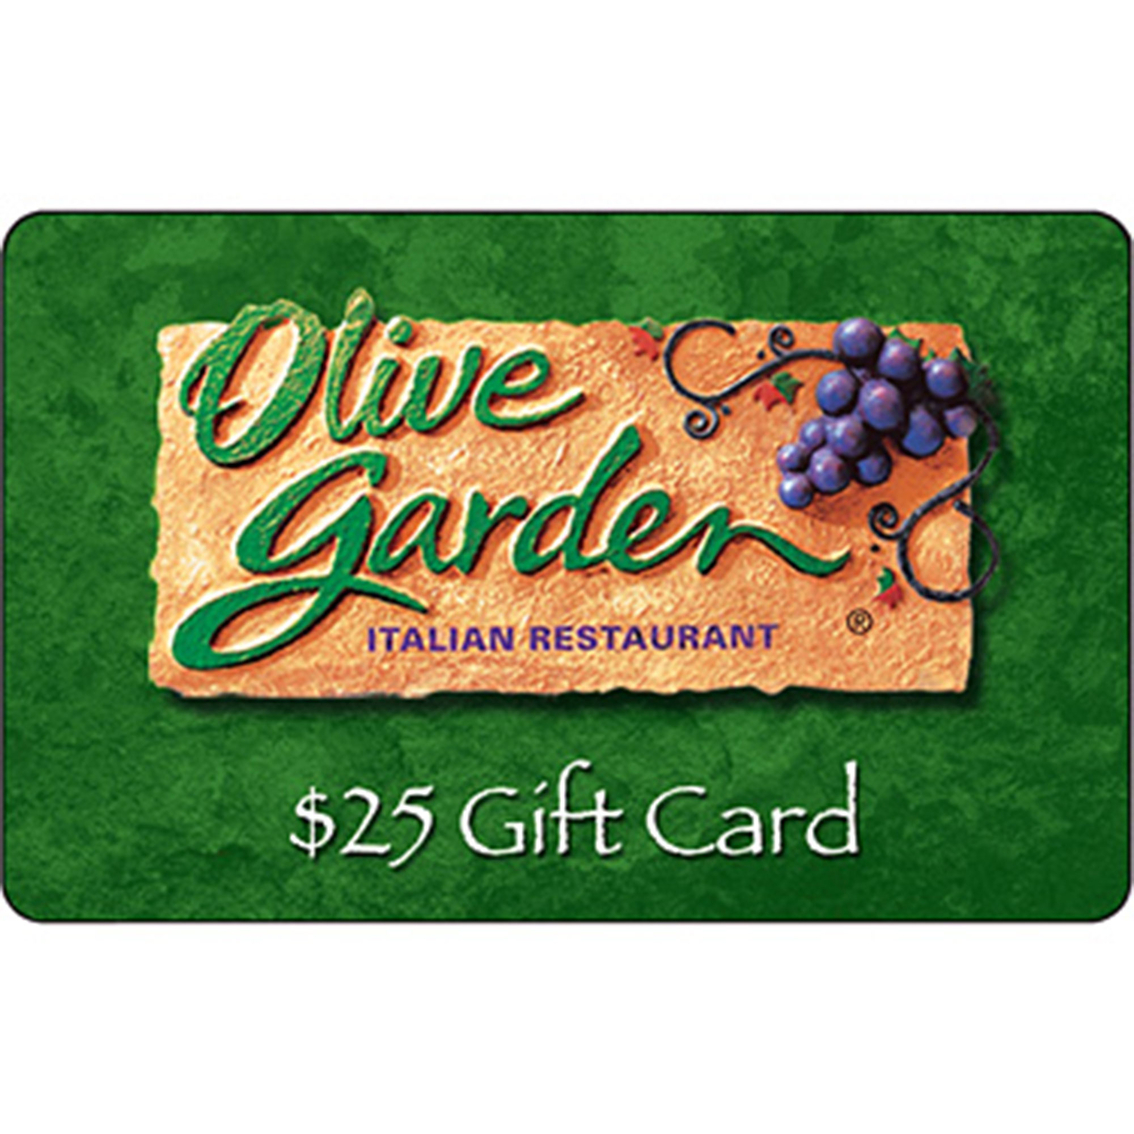 essay my favorite restaurant olive garden Read olive garden vs milestones free essay and over 88,000 other research documents olive garden vs milestones olive garden vs milestones in this paper i will compare my favorite restaurant, olive garden, to its most direct competition.